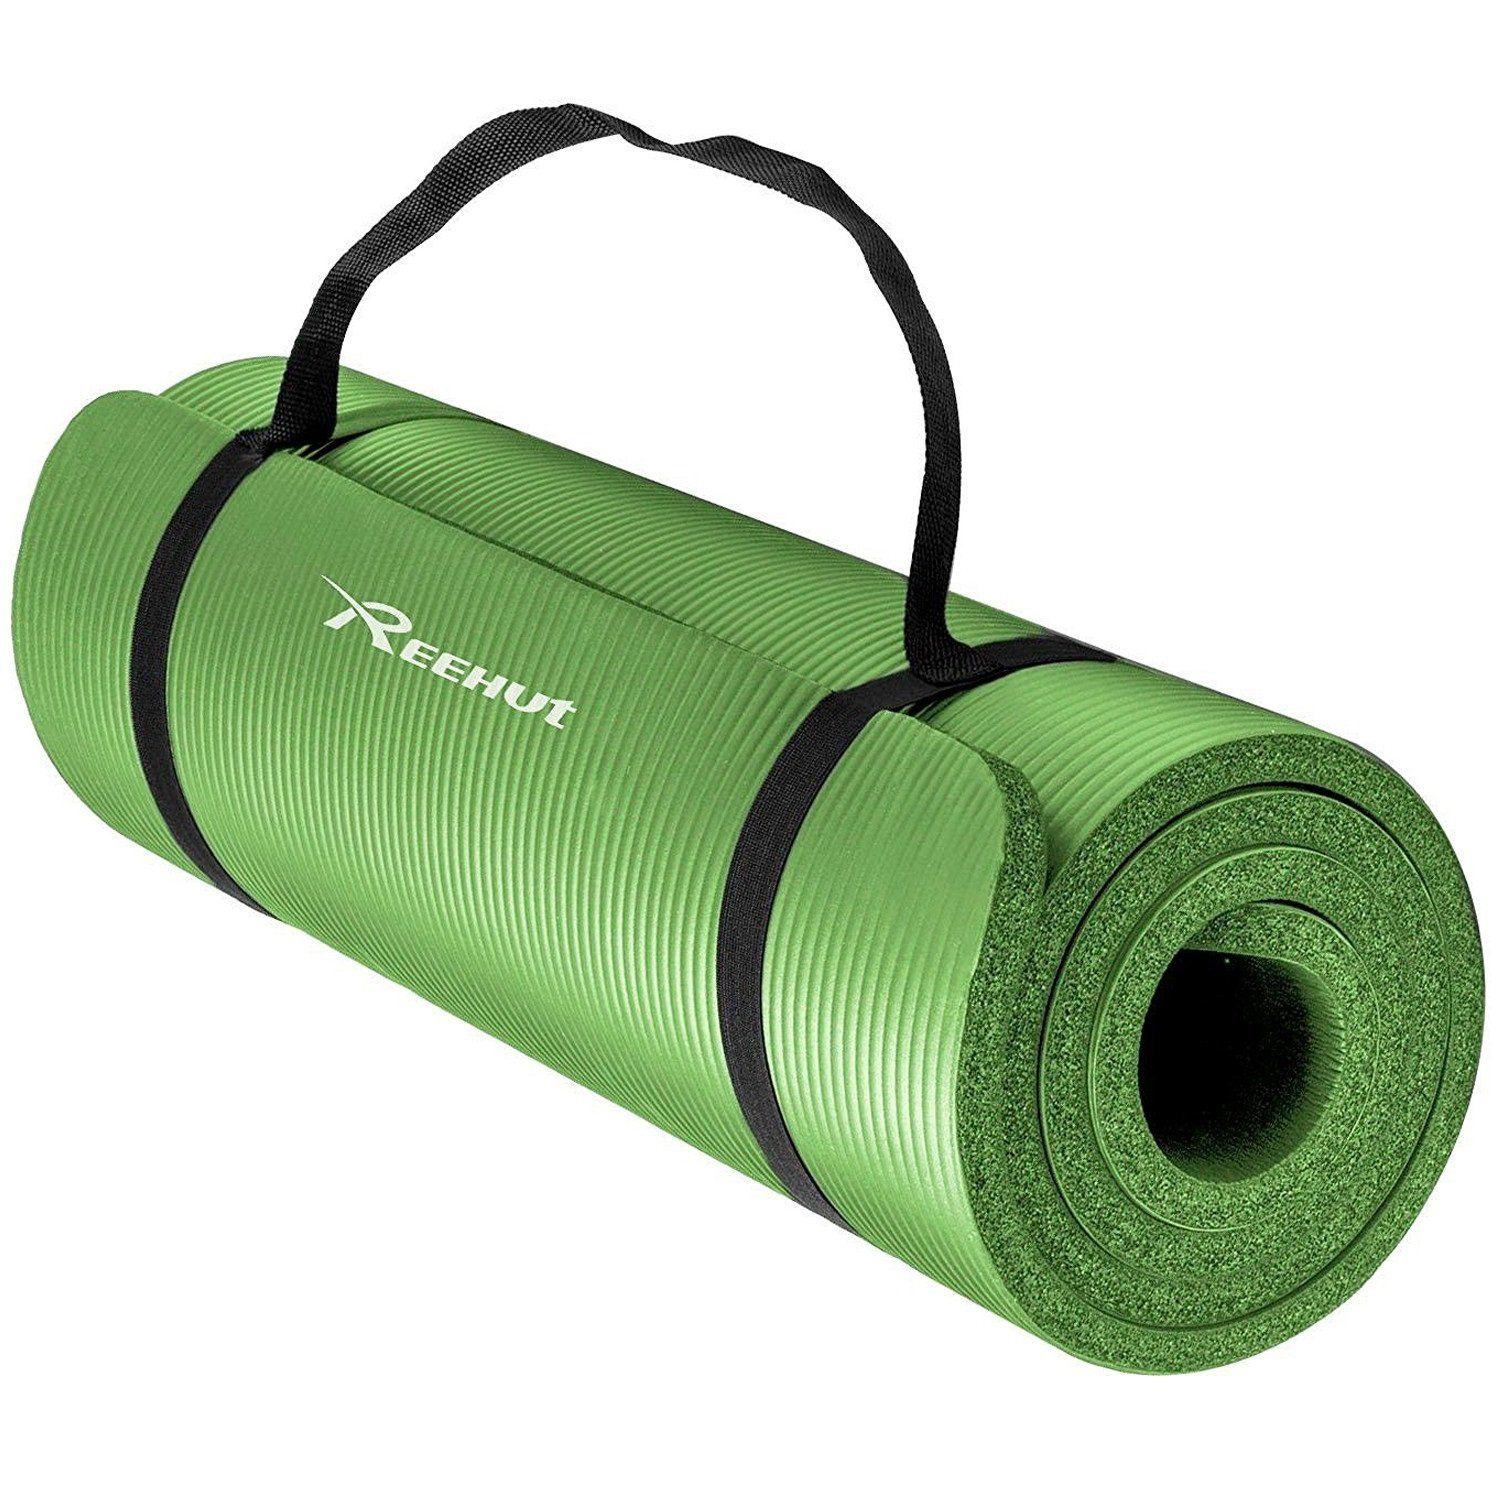 Amazon Com Reehut 1 X2f 2 Inch Extra Thick High Density Nbr Exercise Yoga Mat For Pilates Fitness Amp Thick Yoga Mats Extra Thick Yoga Mat Yoga Mats Best